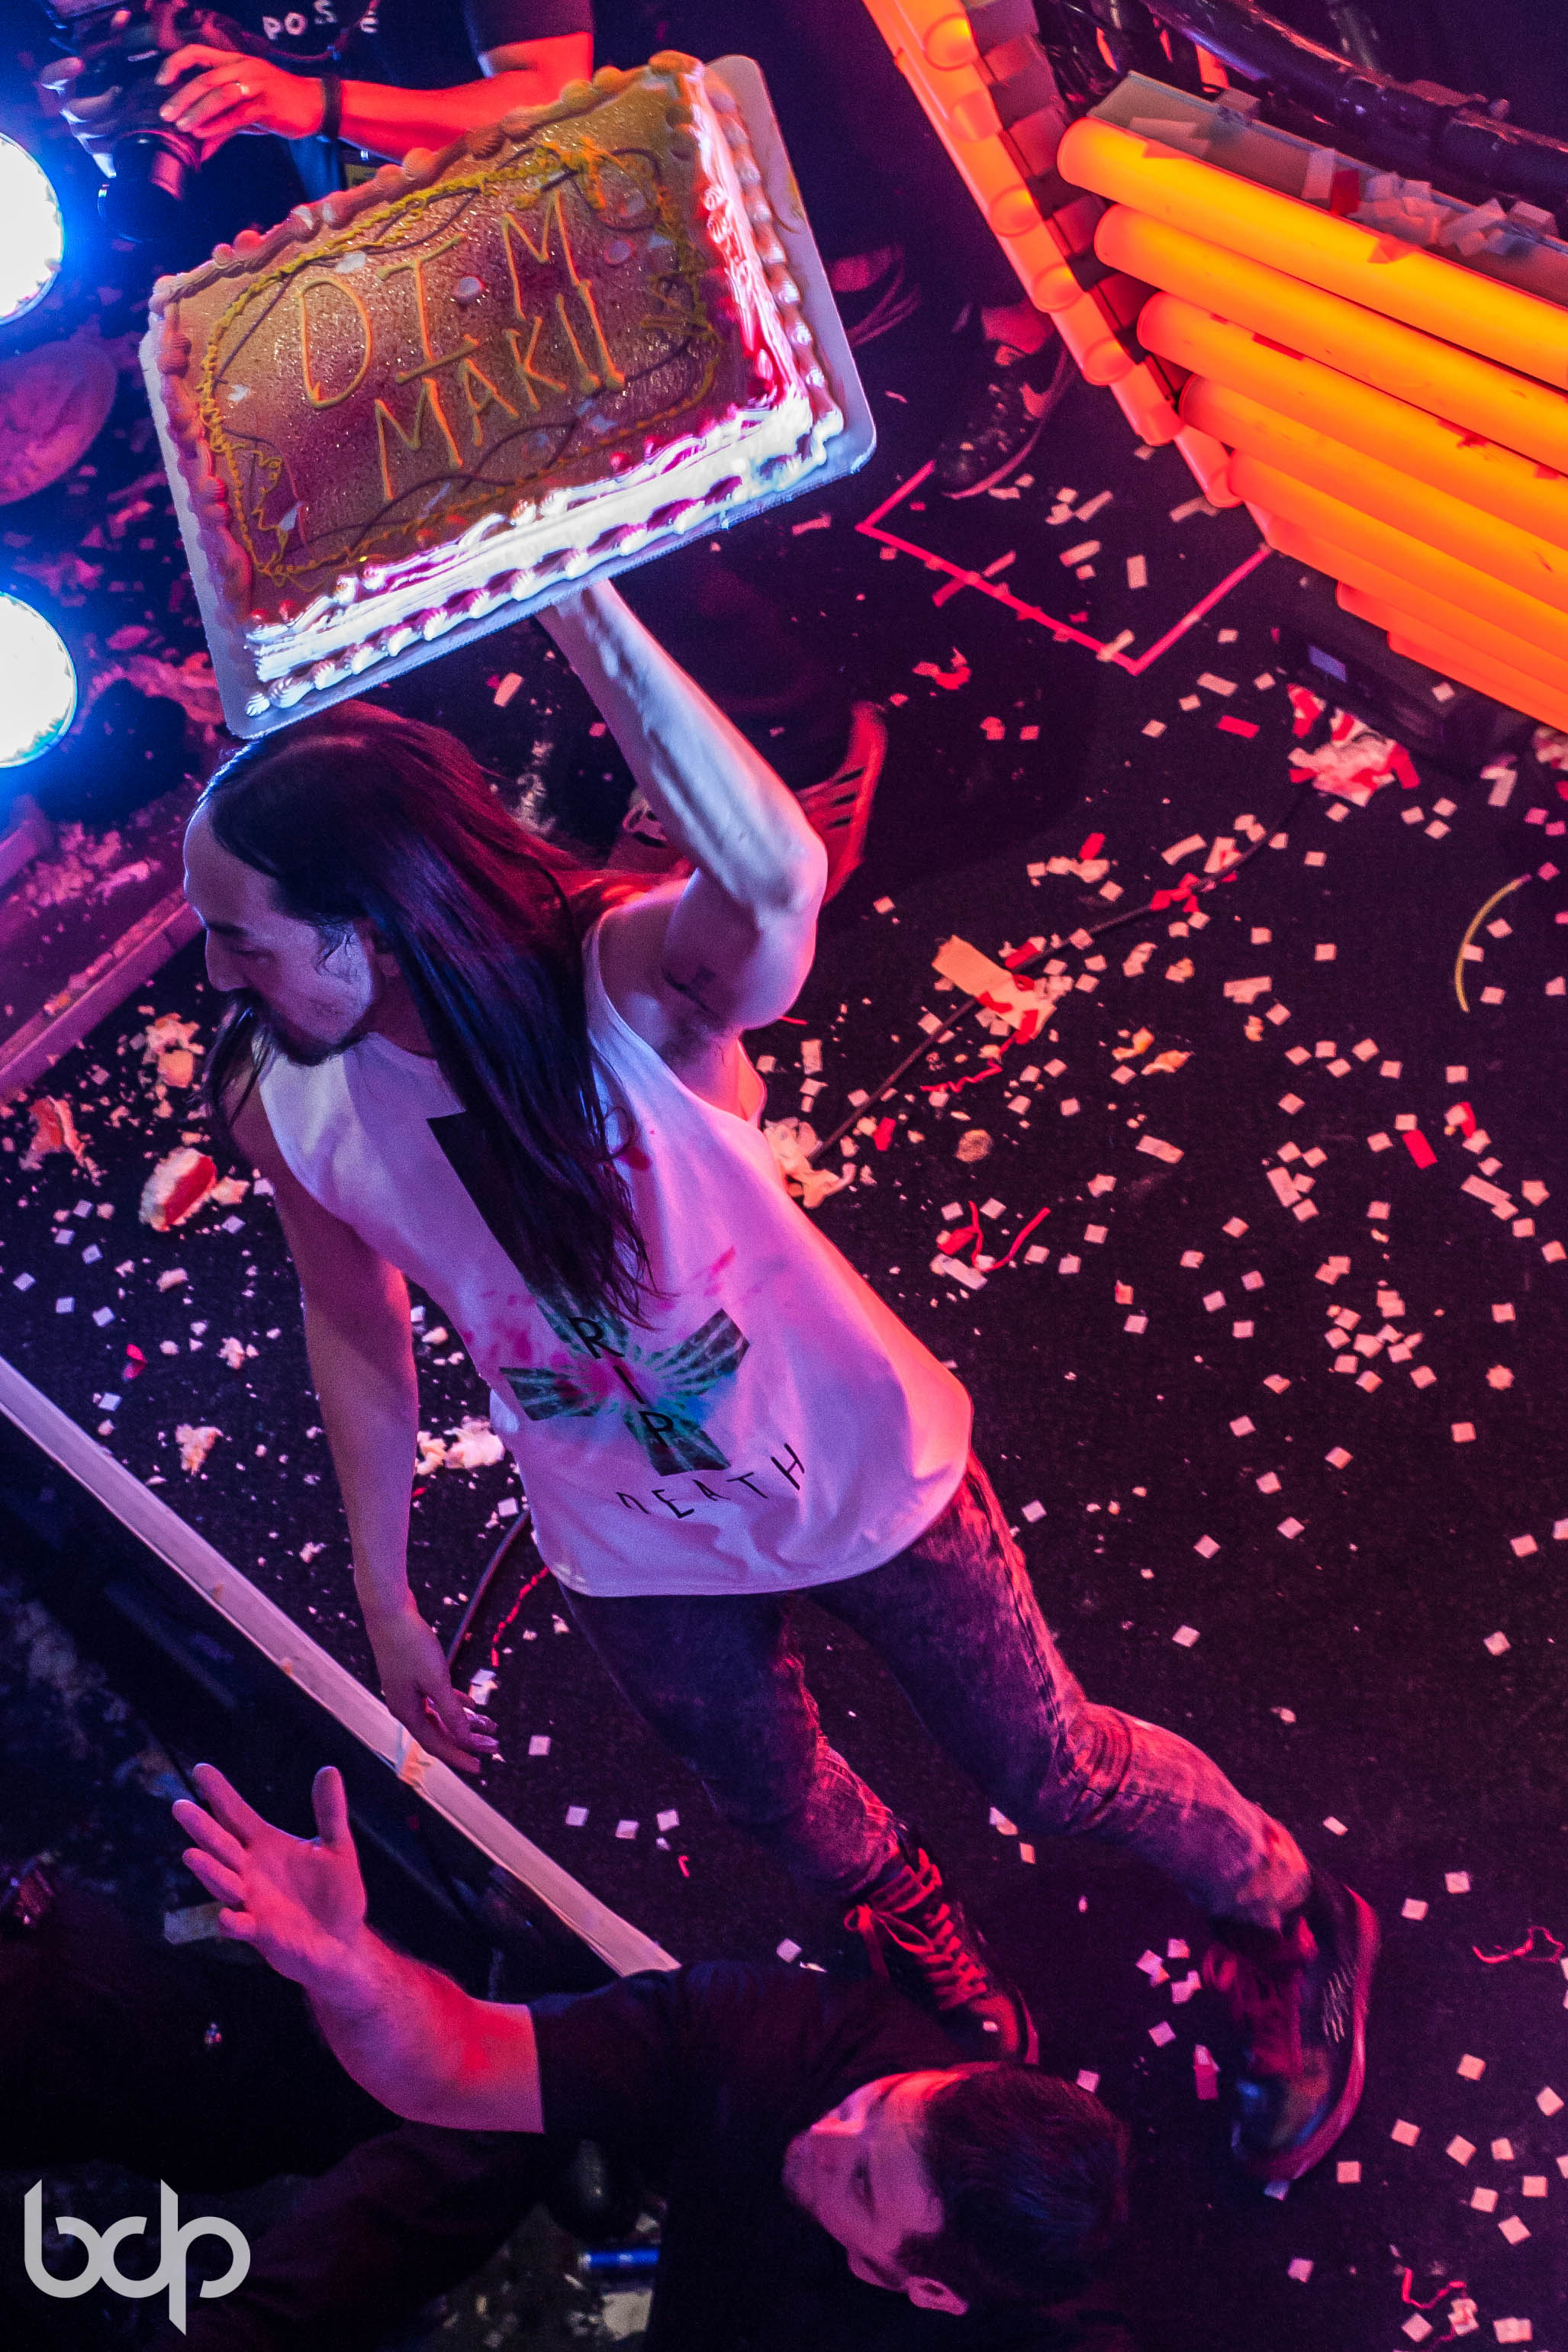 Aokify America Tour at Epic at Epic 110913 BDP-66.jpg